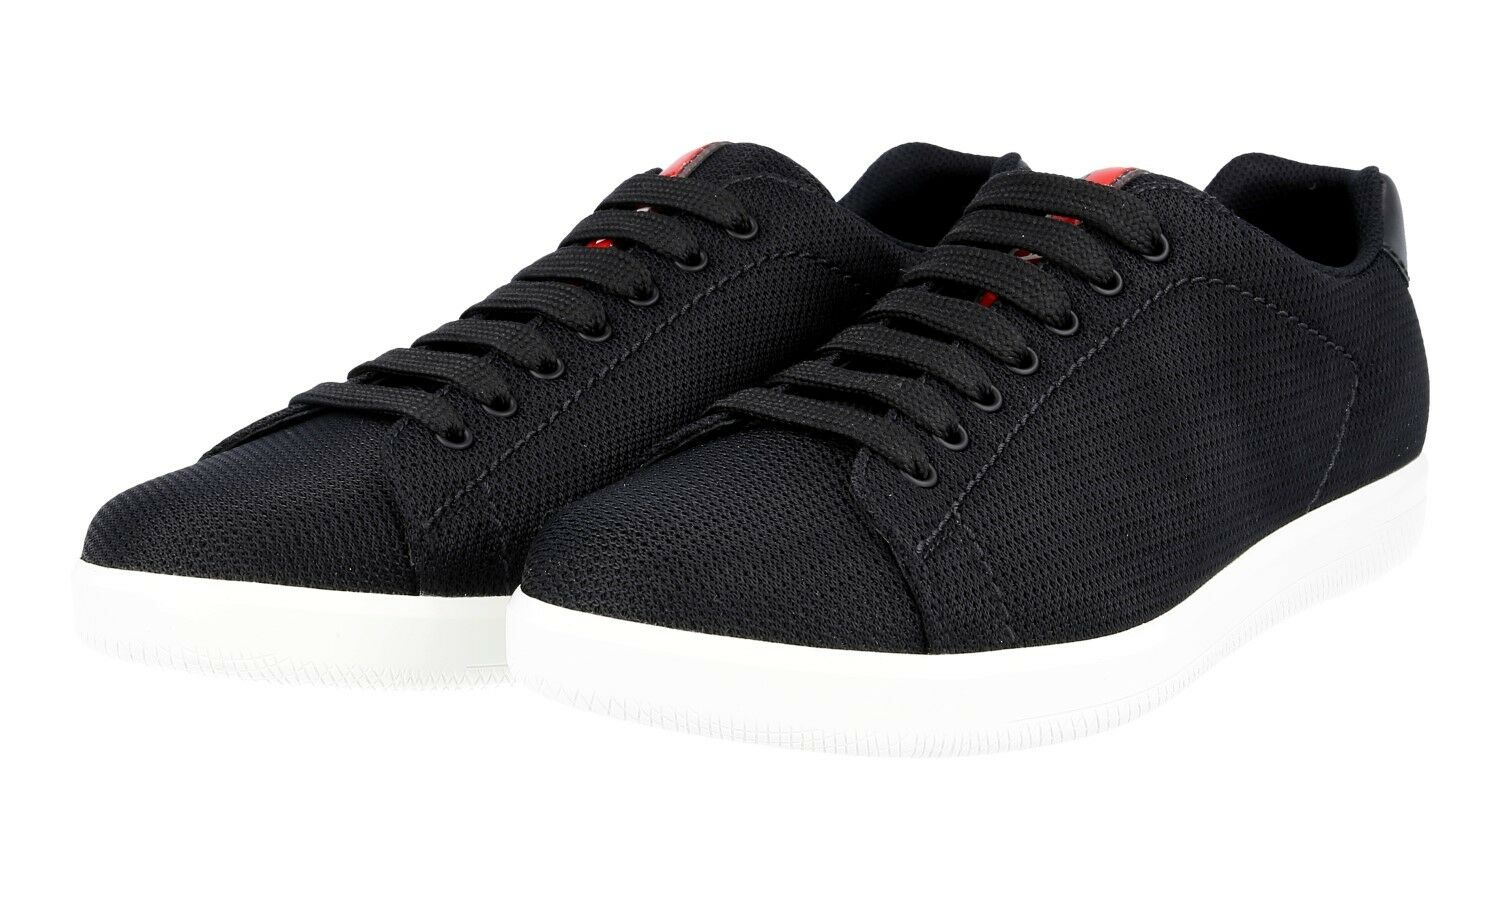 AUTHENTIC LUXURY PRADA scarpe da ginnastica scarpe 4E2988 nero NEW US 10.5 EU 43,5 44